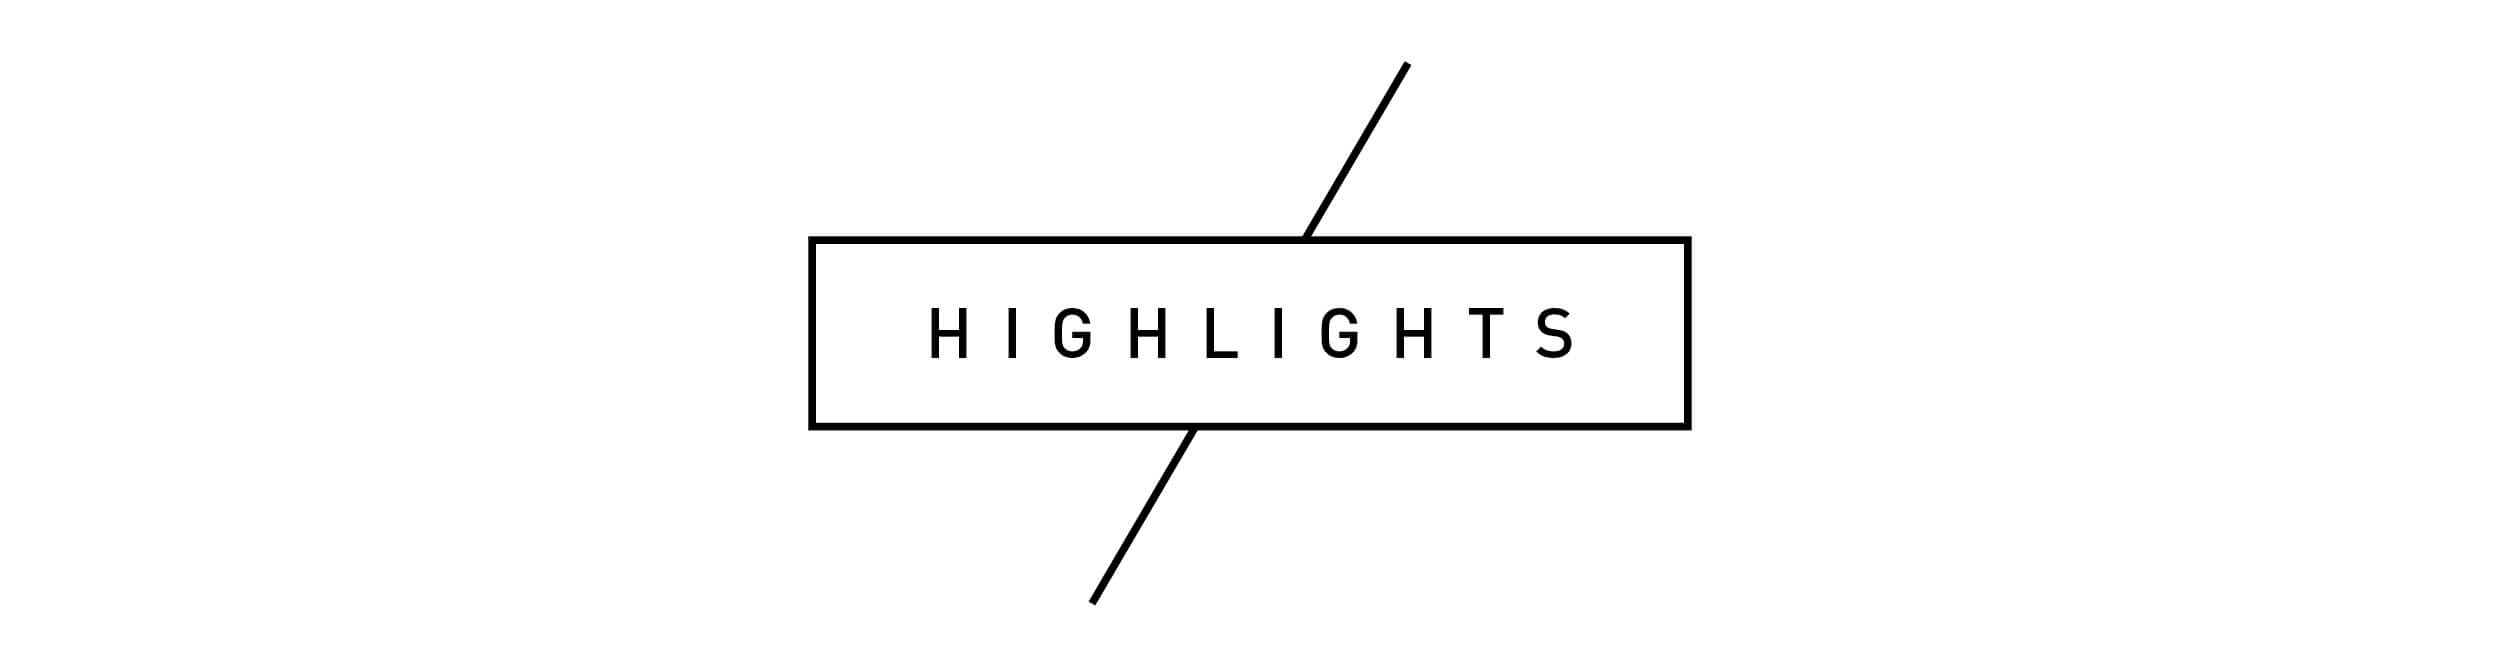 Highlights - Arkoslight